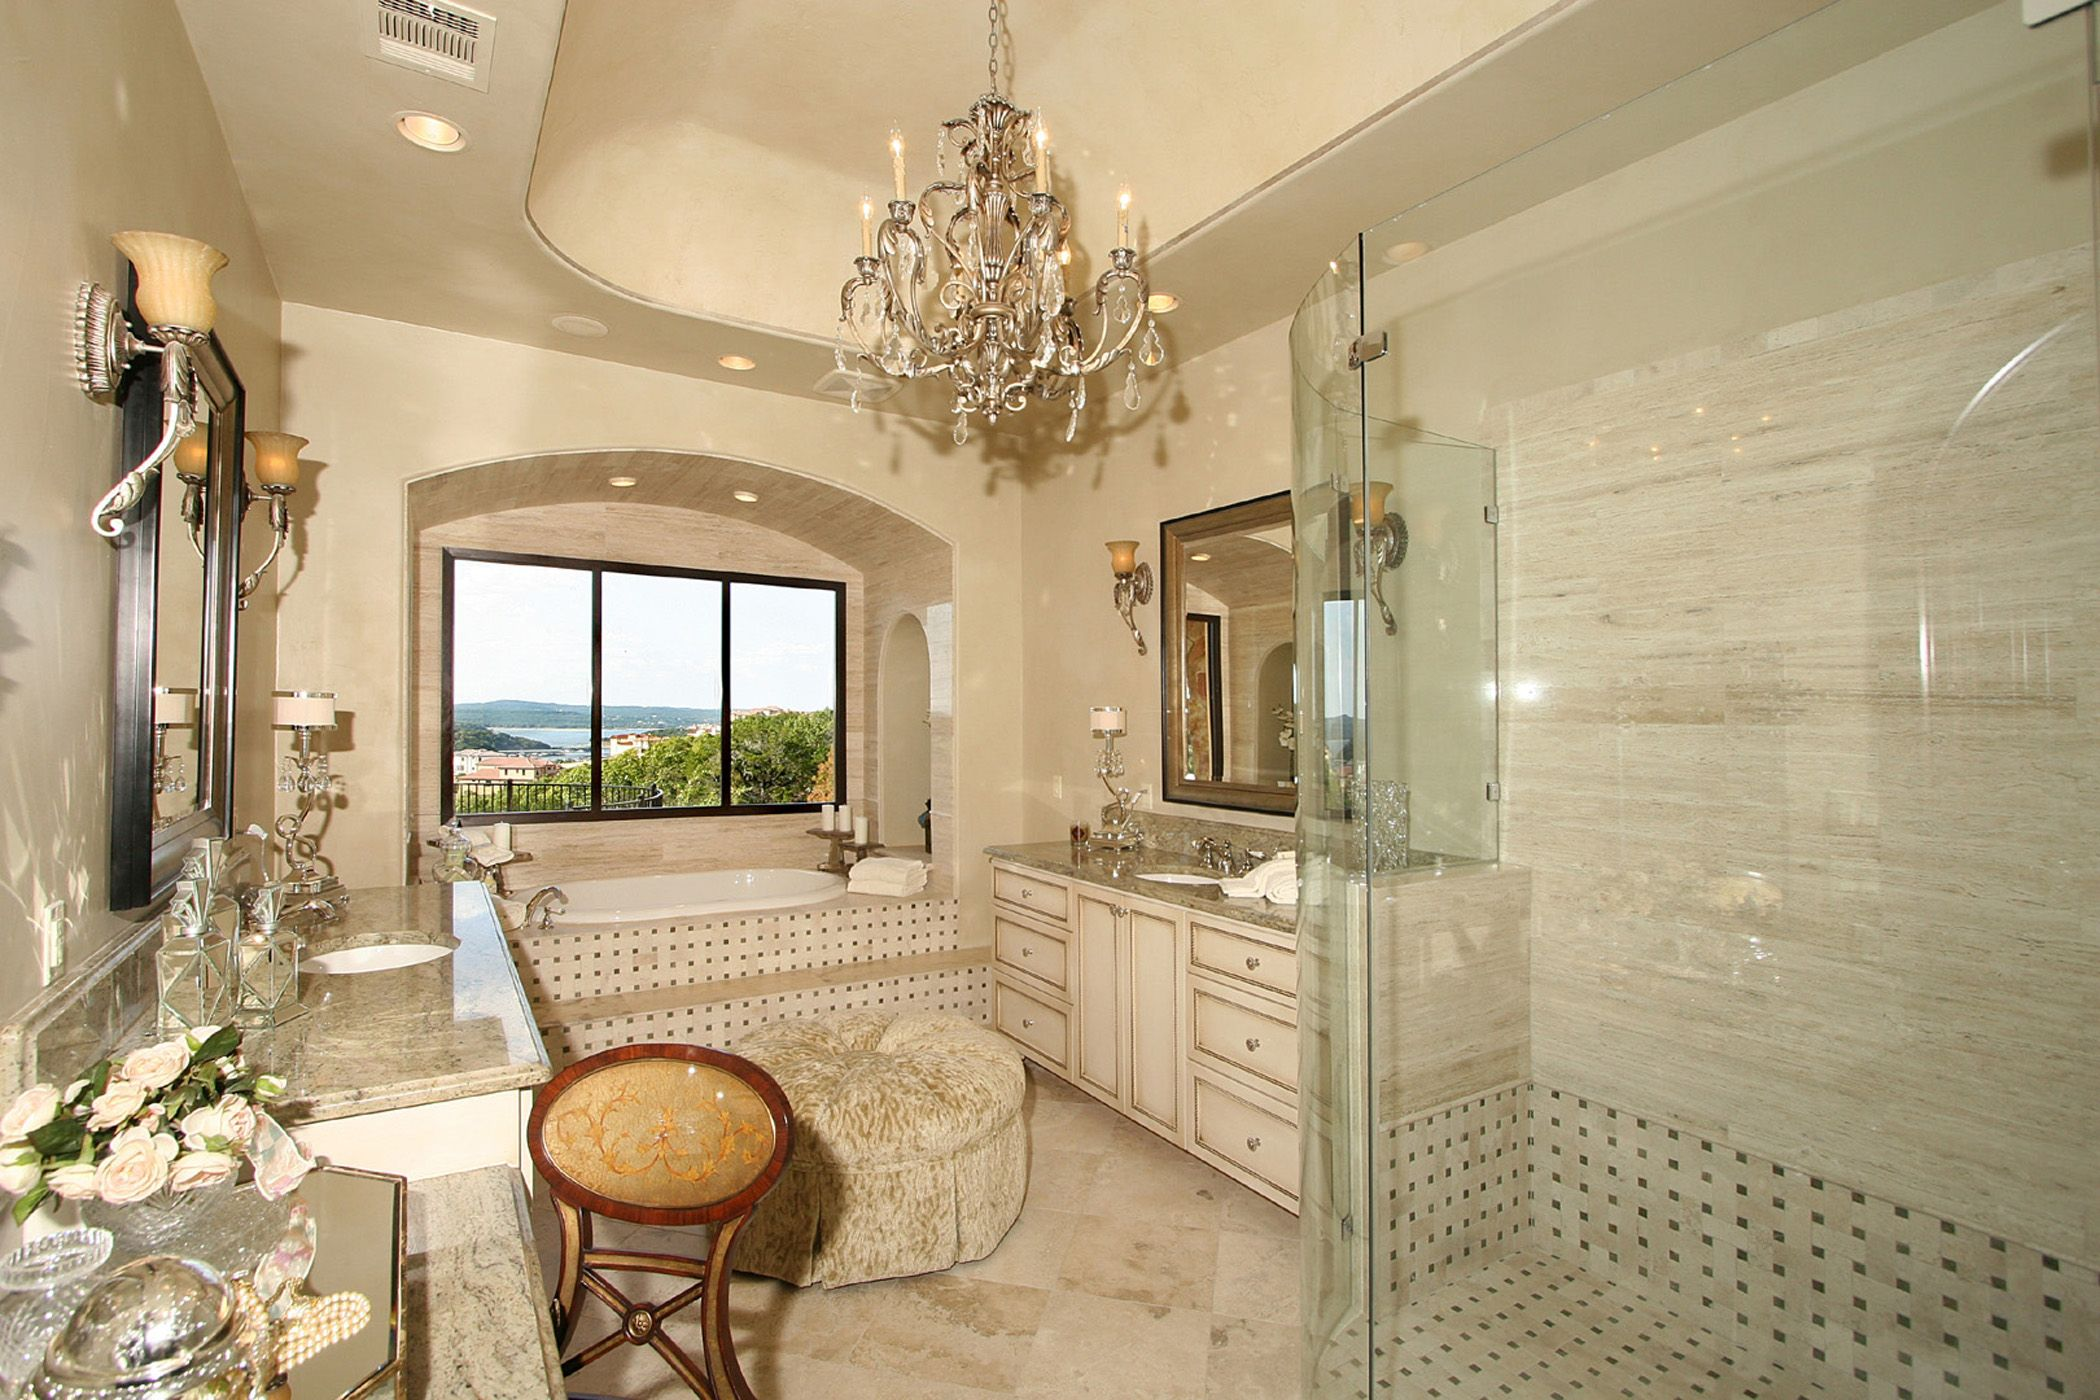 Rough Hollow Lakeway Master Bath Elegance With View By